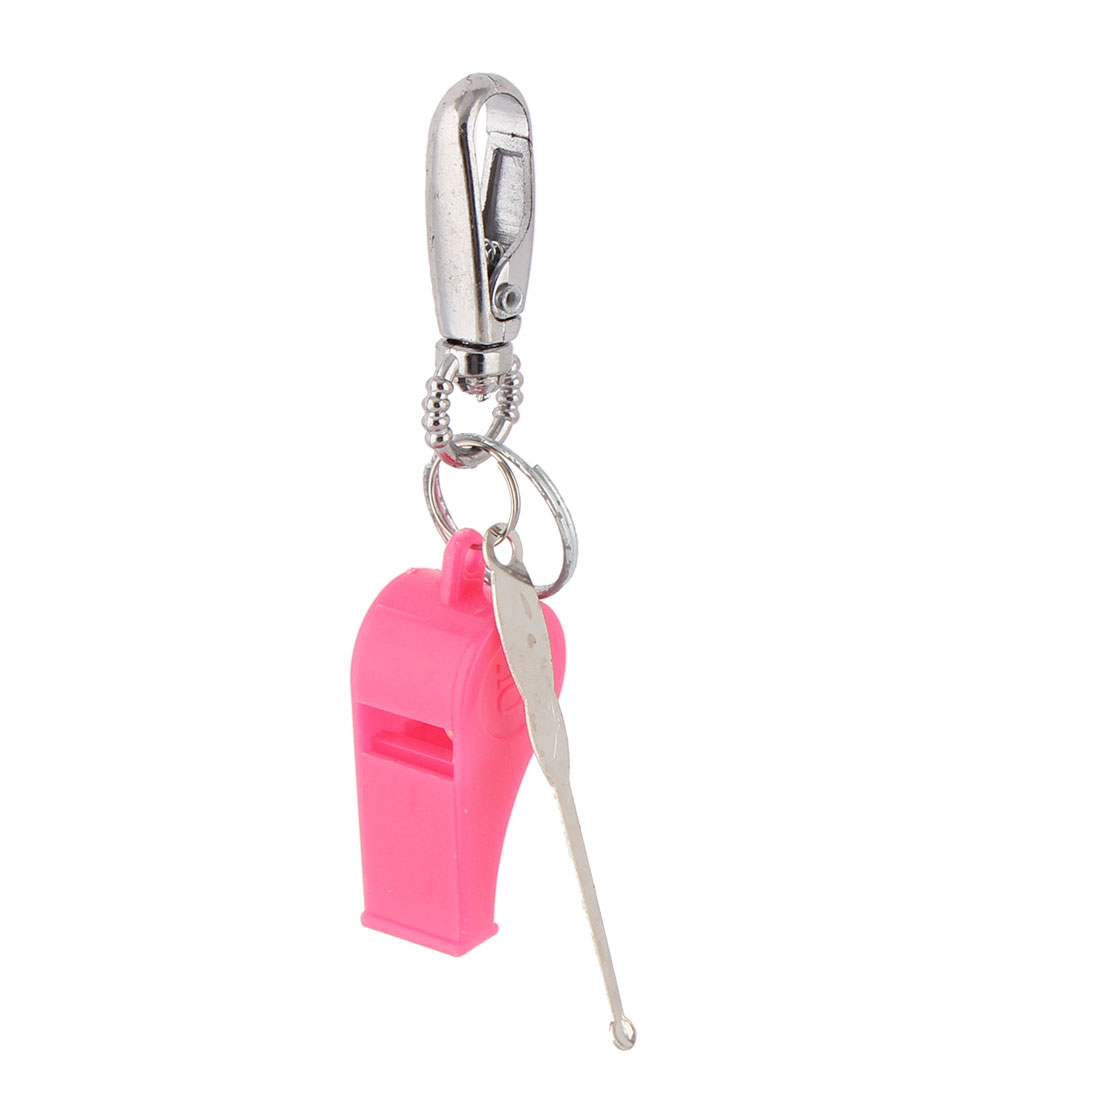 Household Travel Metal Earpick Whistle Pendant Hook Clasp Keyring Keychain Pink 3pcs